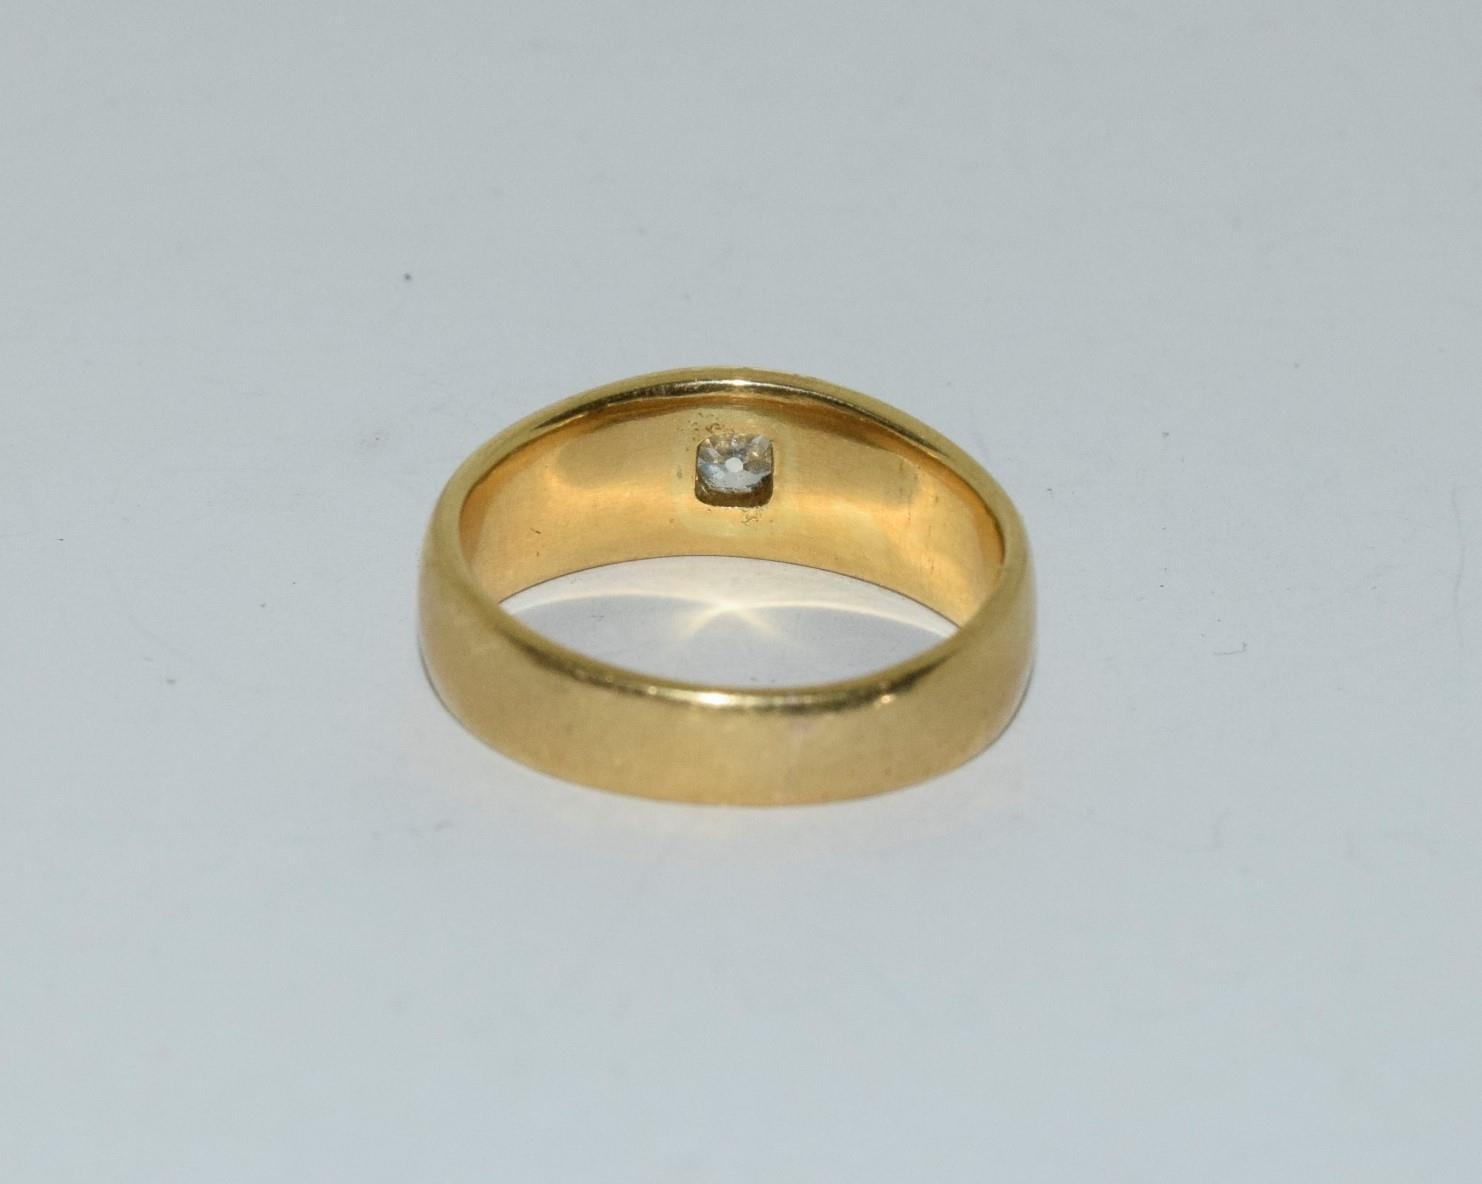 18ct gold mans signet ring set with diamond solitaire of approx 0.25ct size R 9.5gm - Image 3 of 6